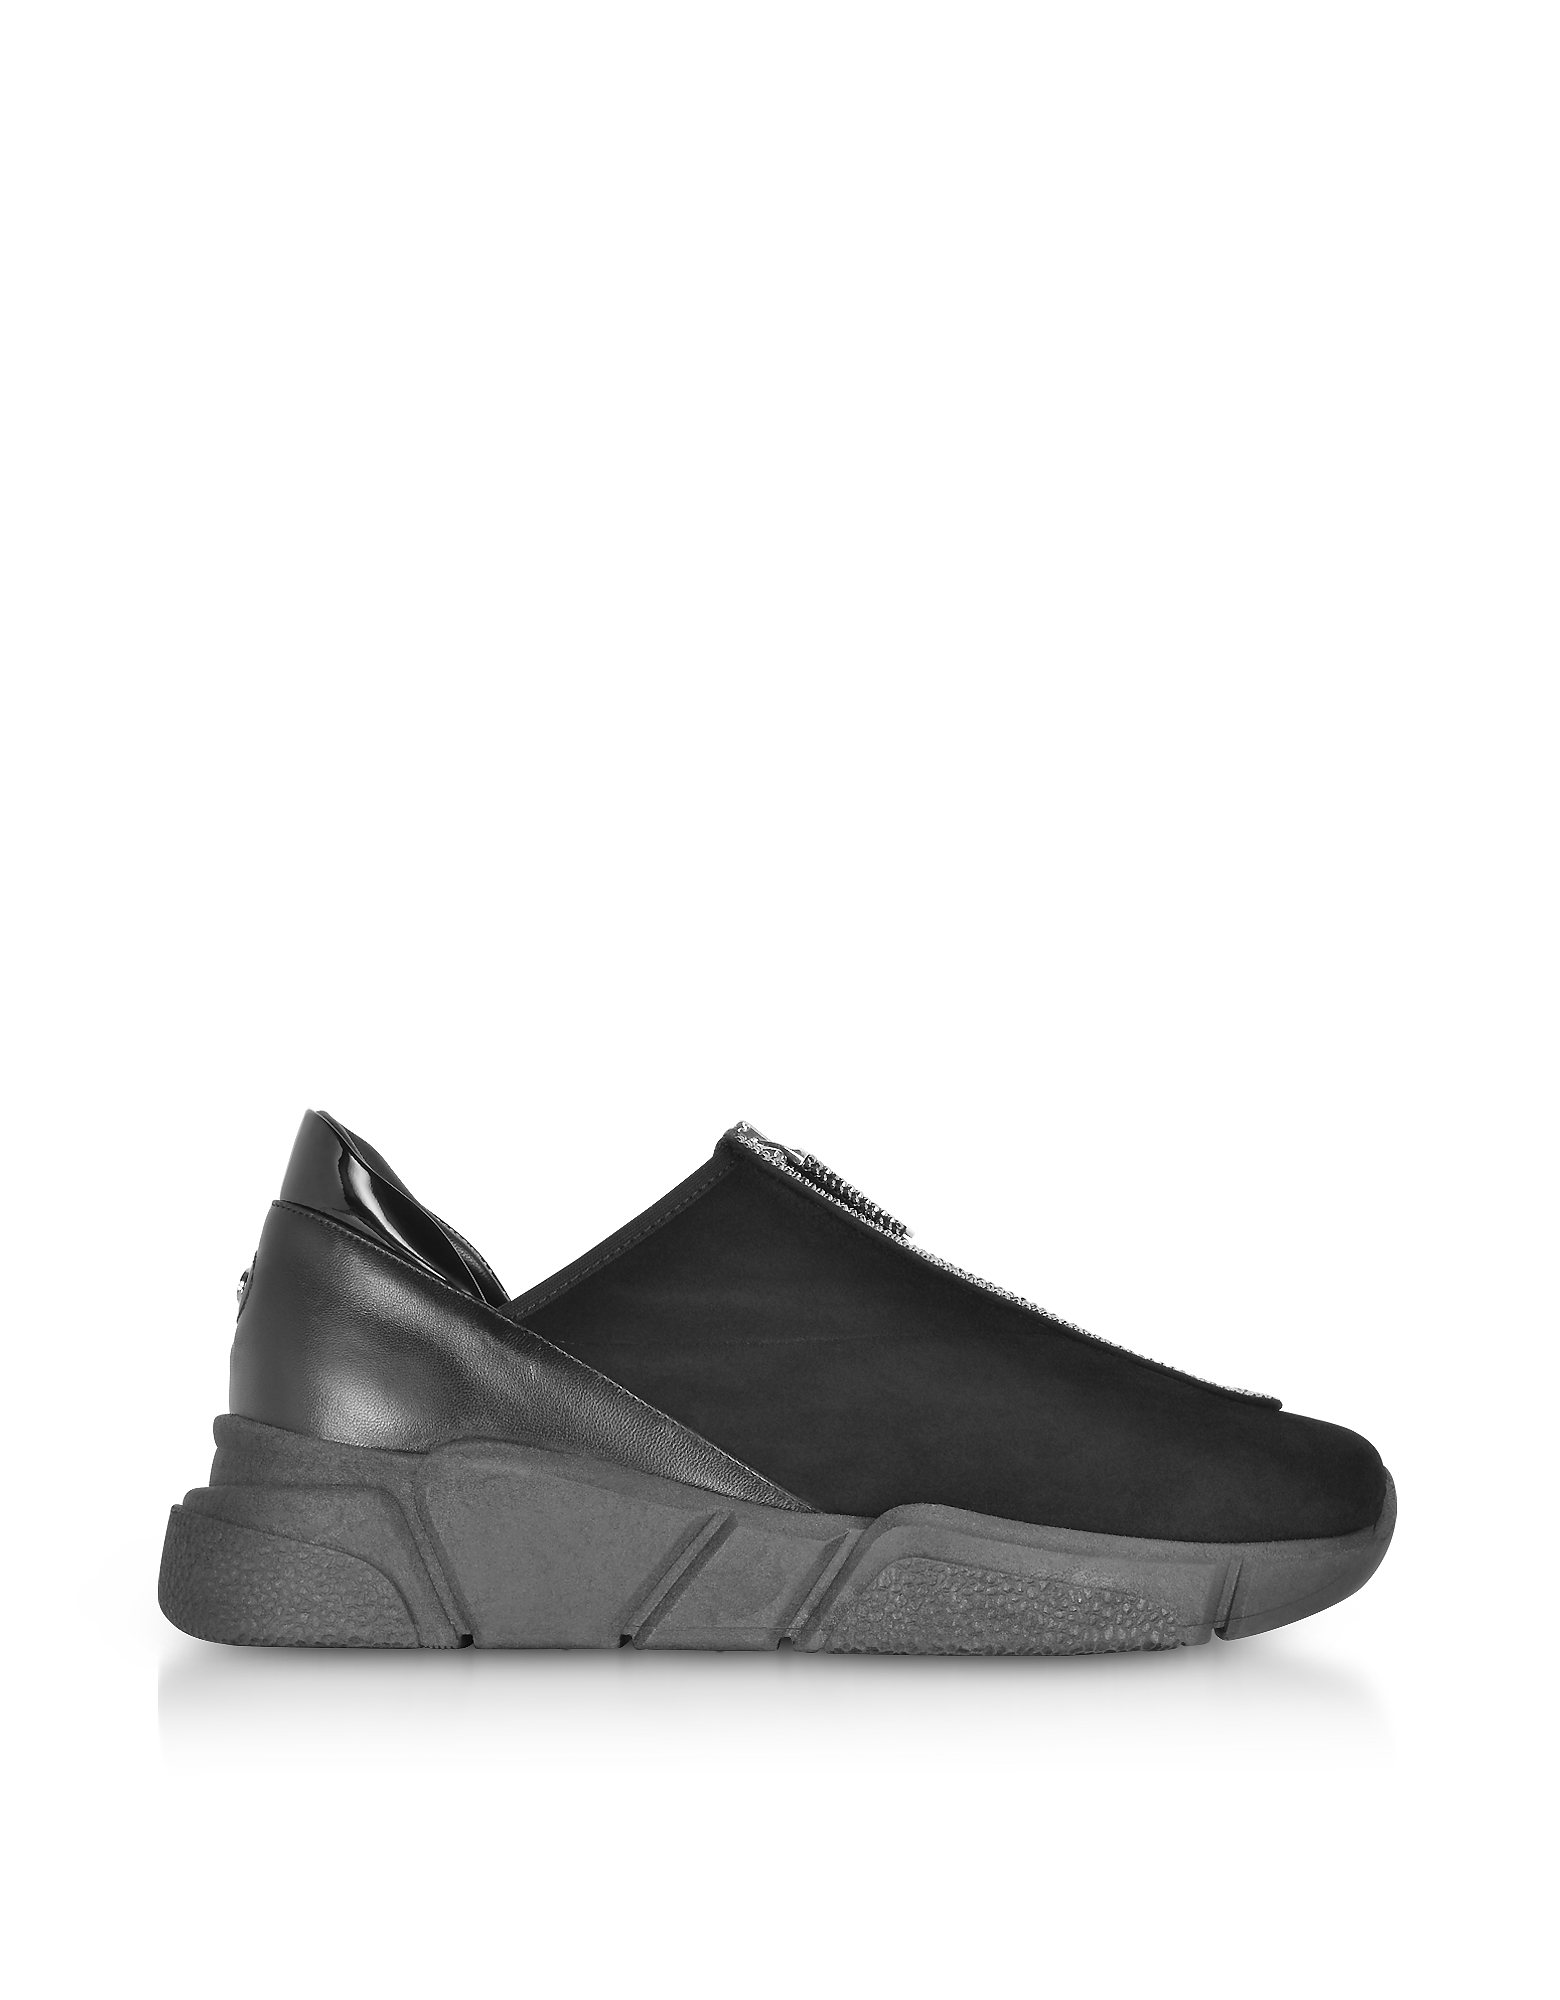 Rodo Designer Shoes, Black Suede Zip Sneakers